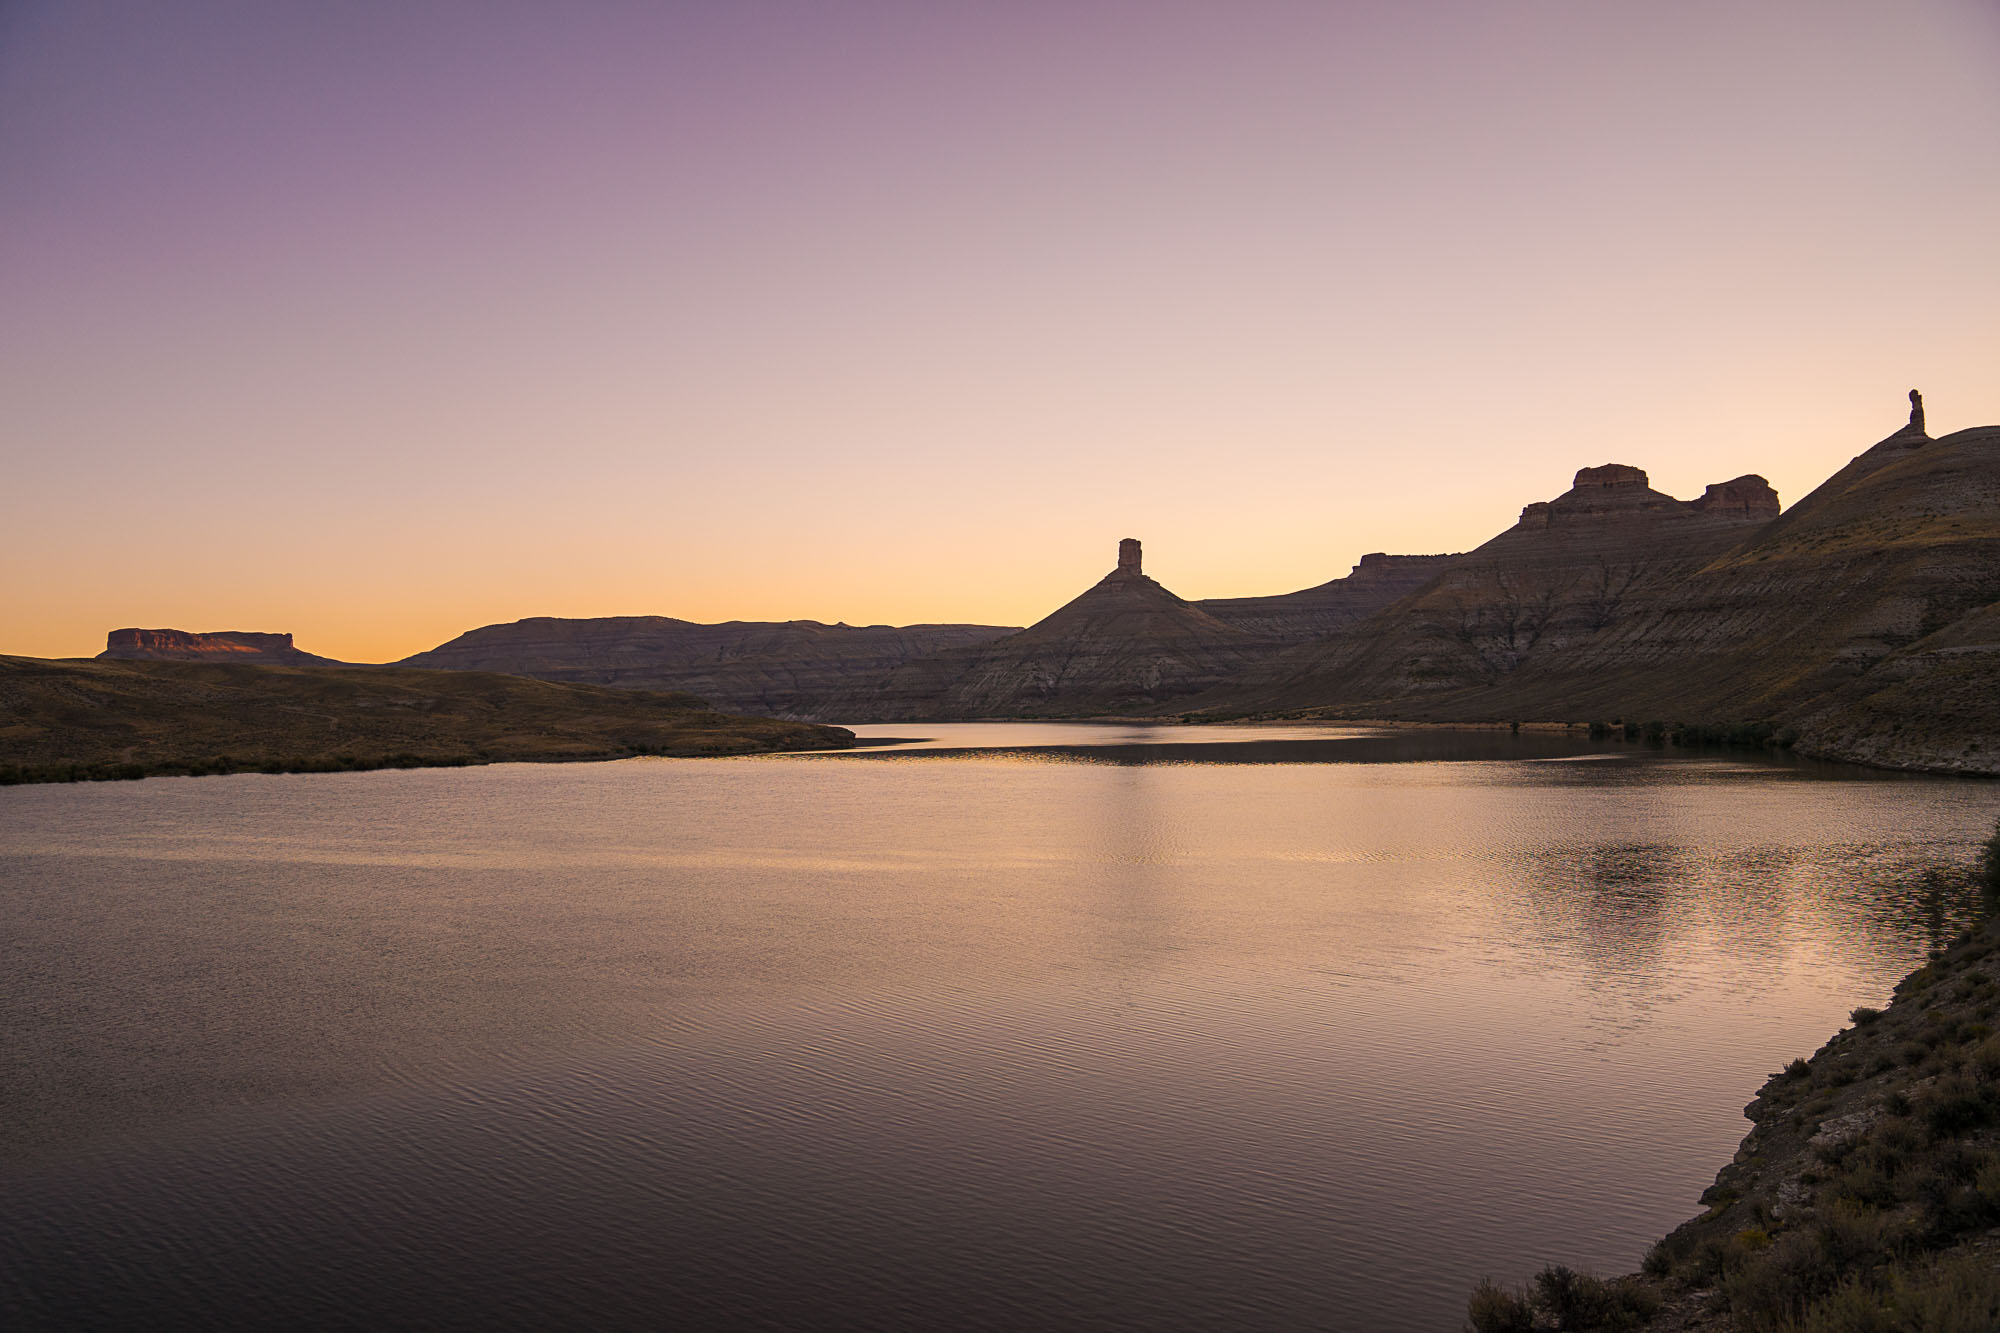 The view from Firehole Canyon campgrounds in Green River, Wyoming.